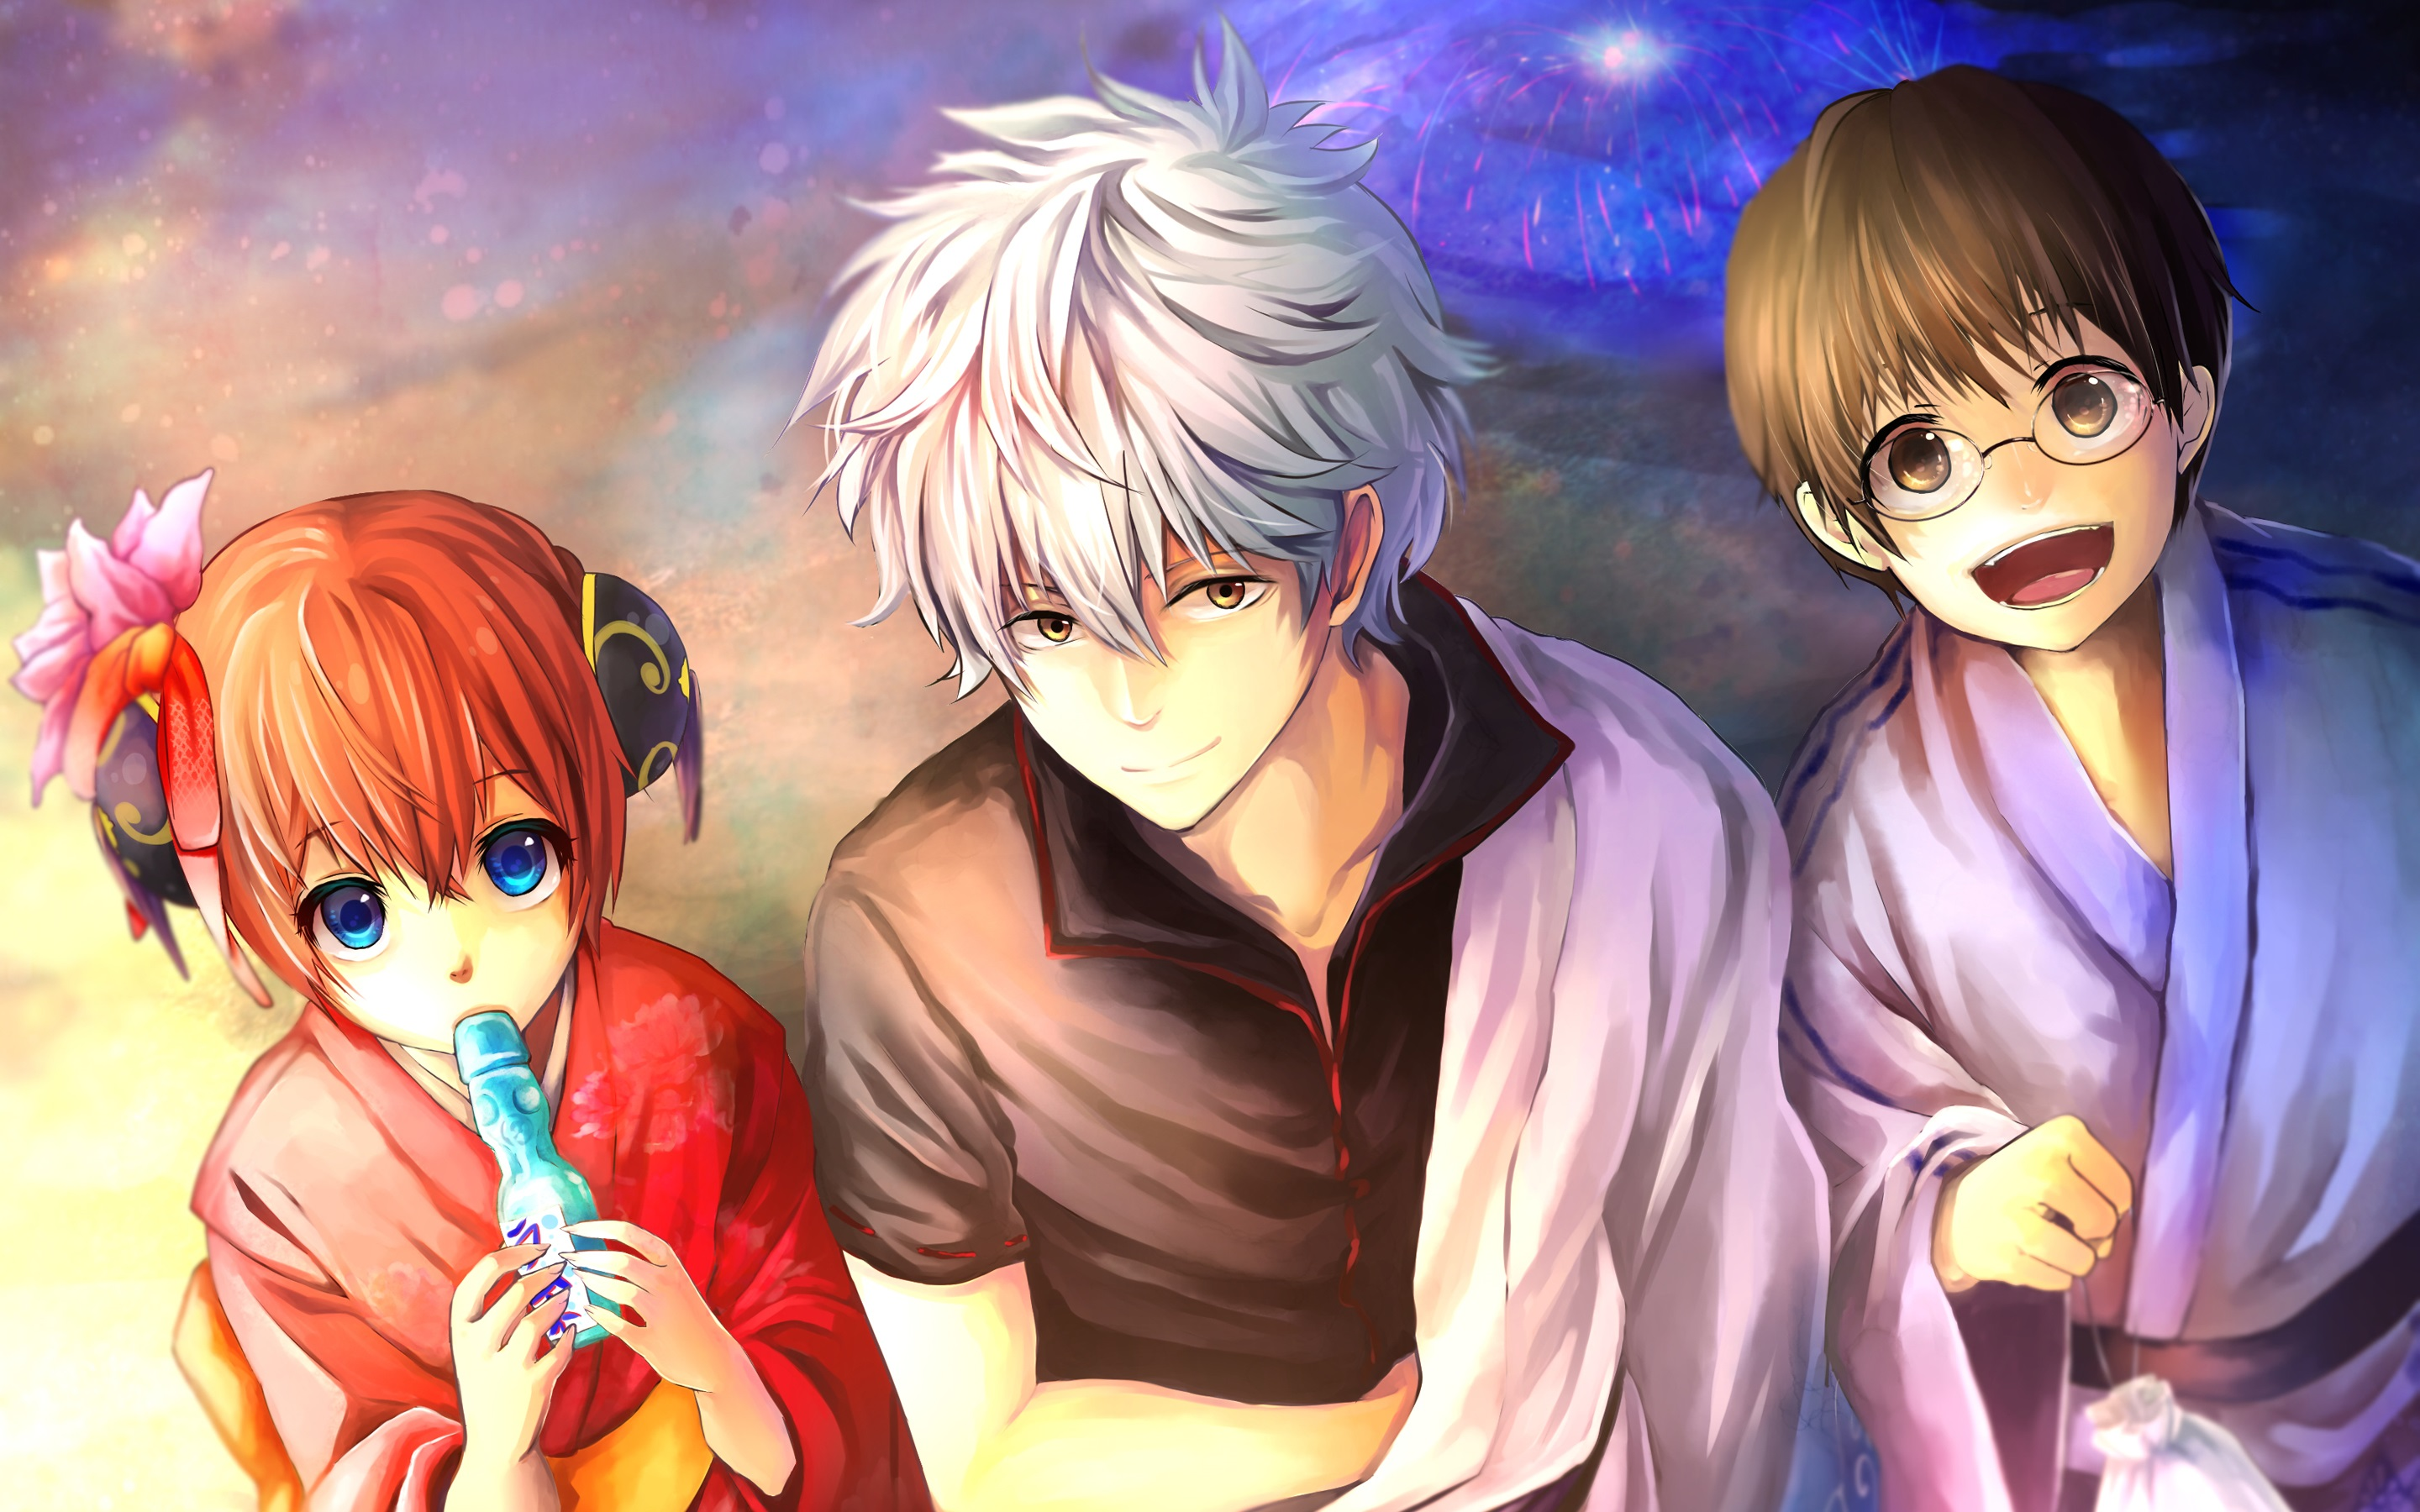 Wallpaper Hd For Mobile Free Download Girl Gintama Classic Anime Wallpaper Other Wallpaper Better